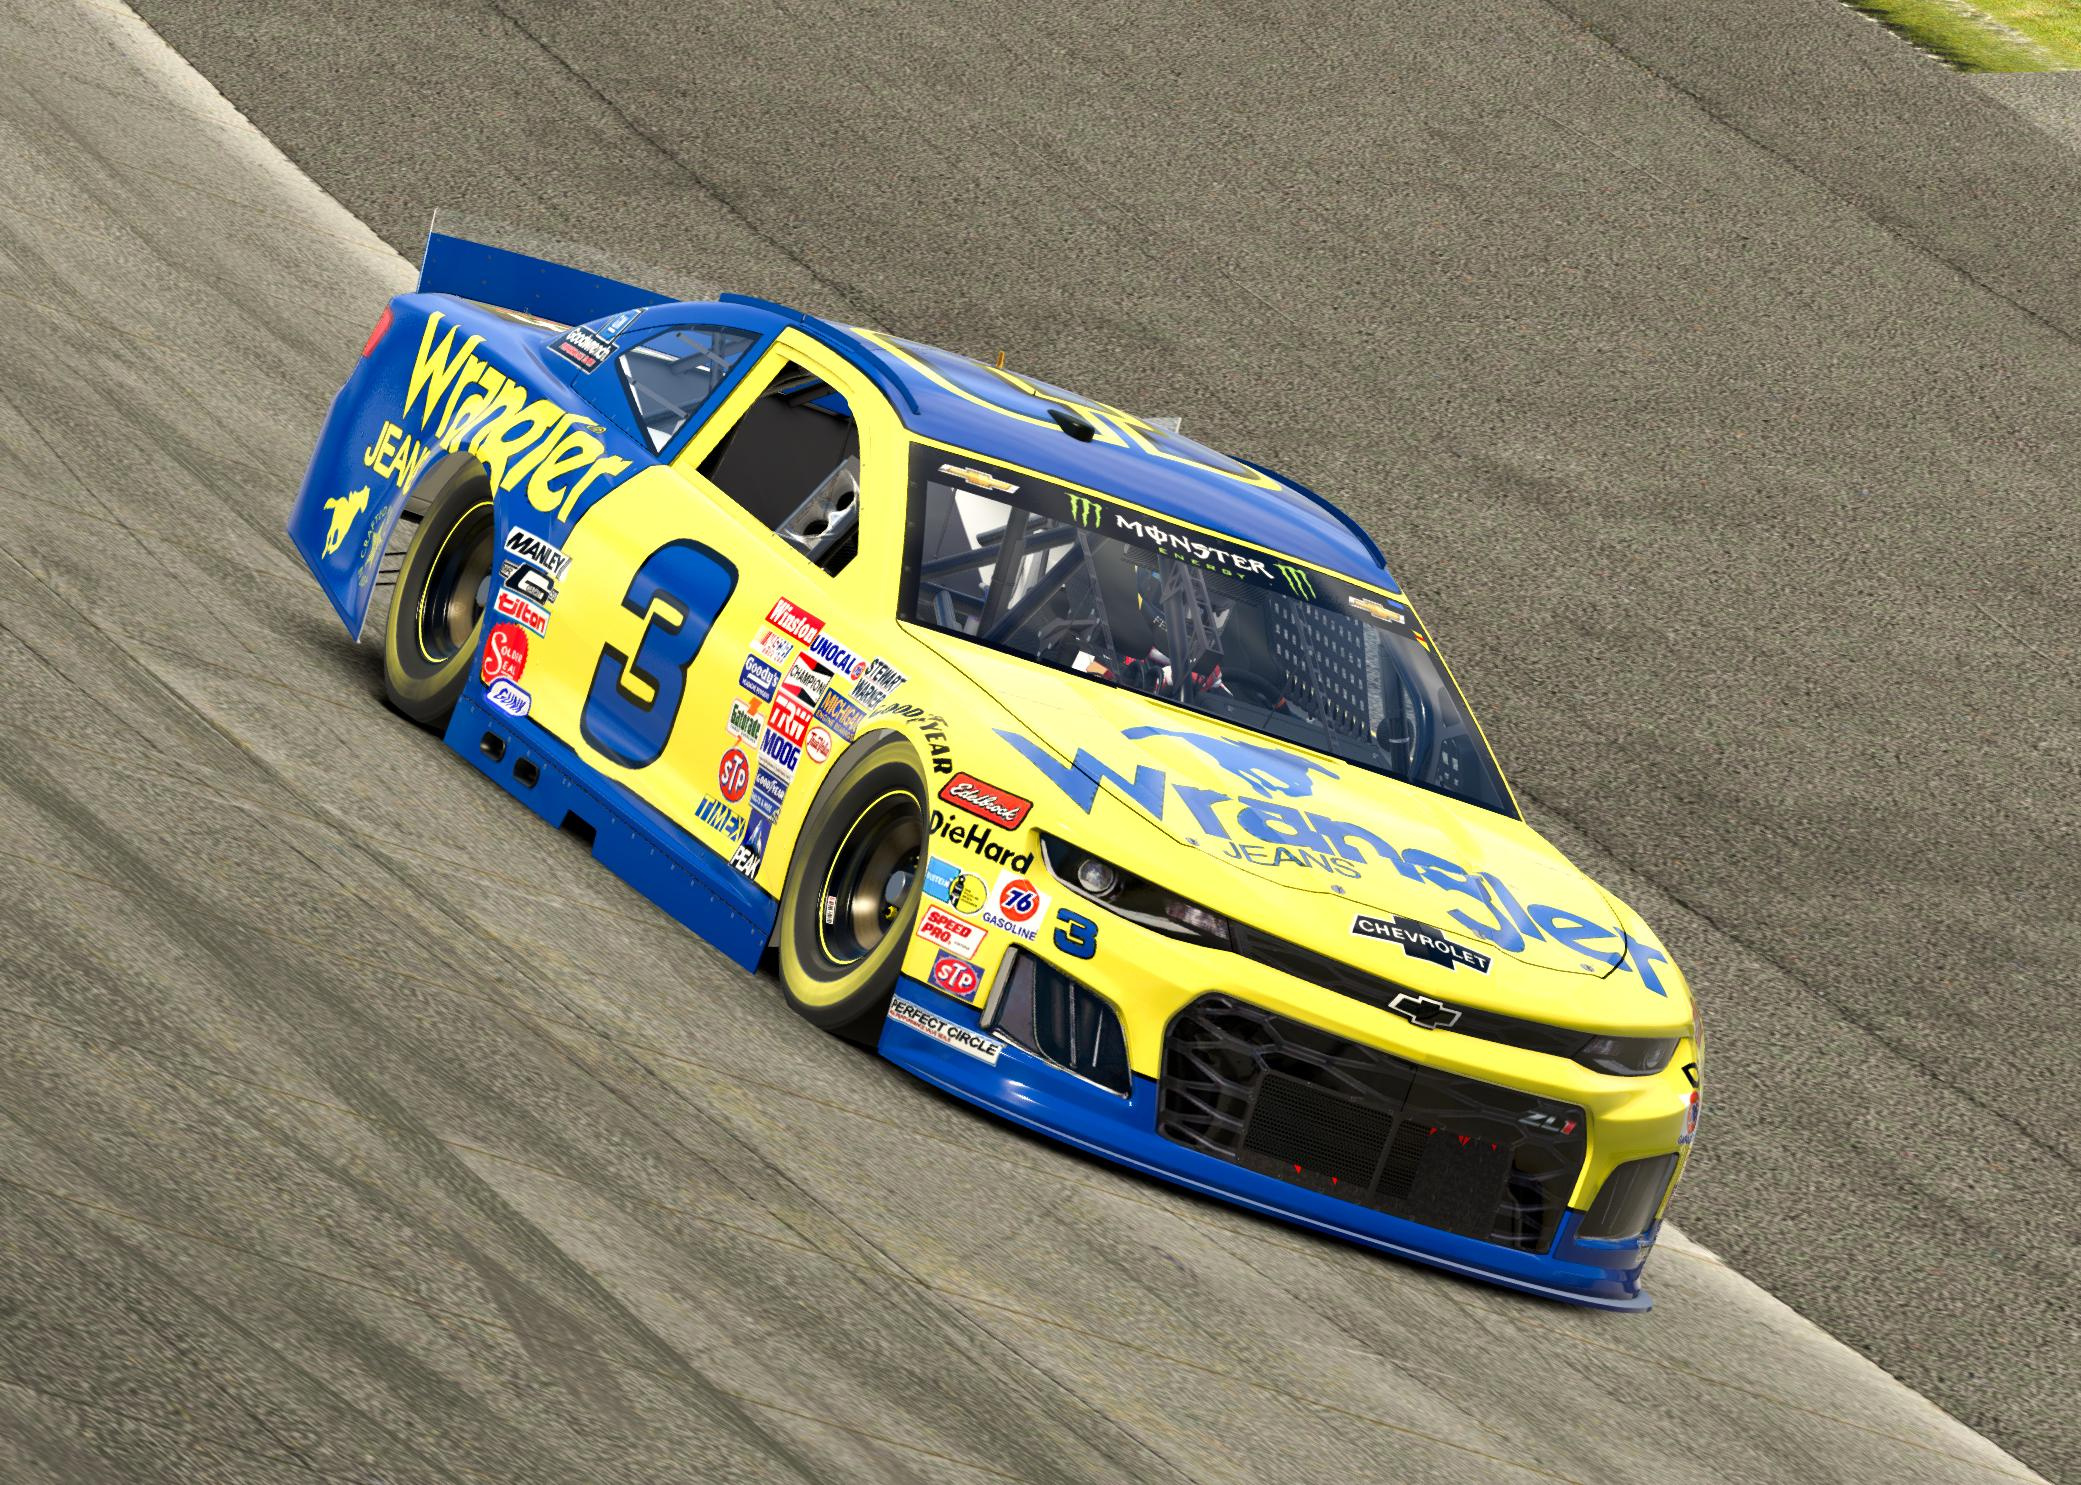 Preview of 1986 WRANGLER JEANS DALE EARNHART Chevrolet ZL1 REPLICA by Corey H.